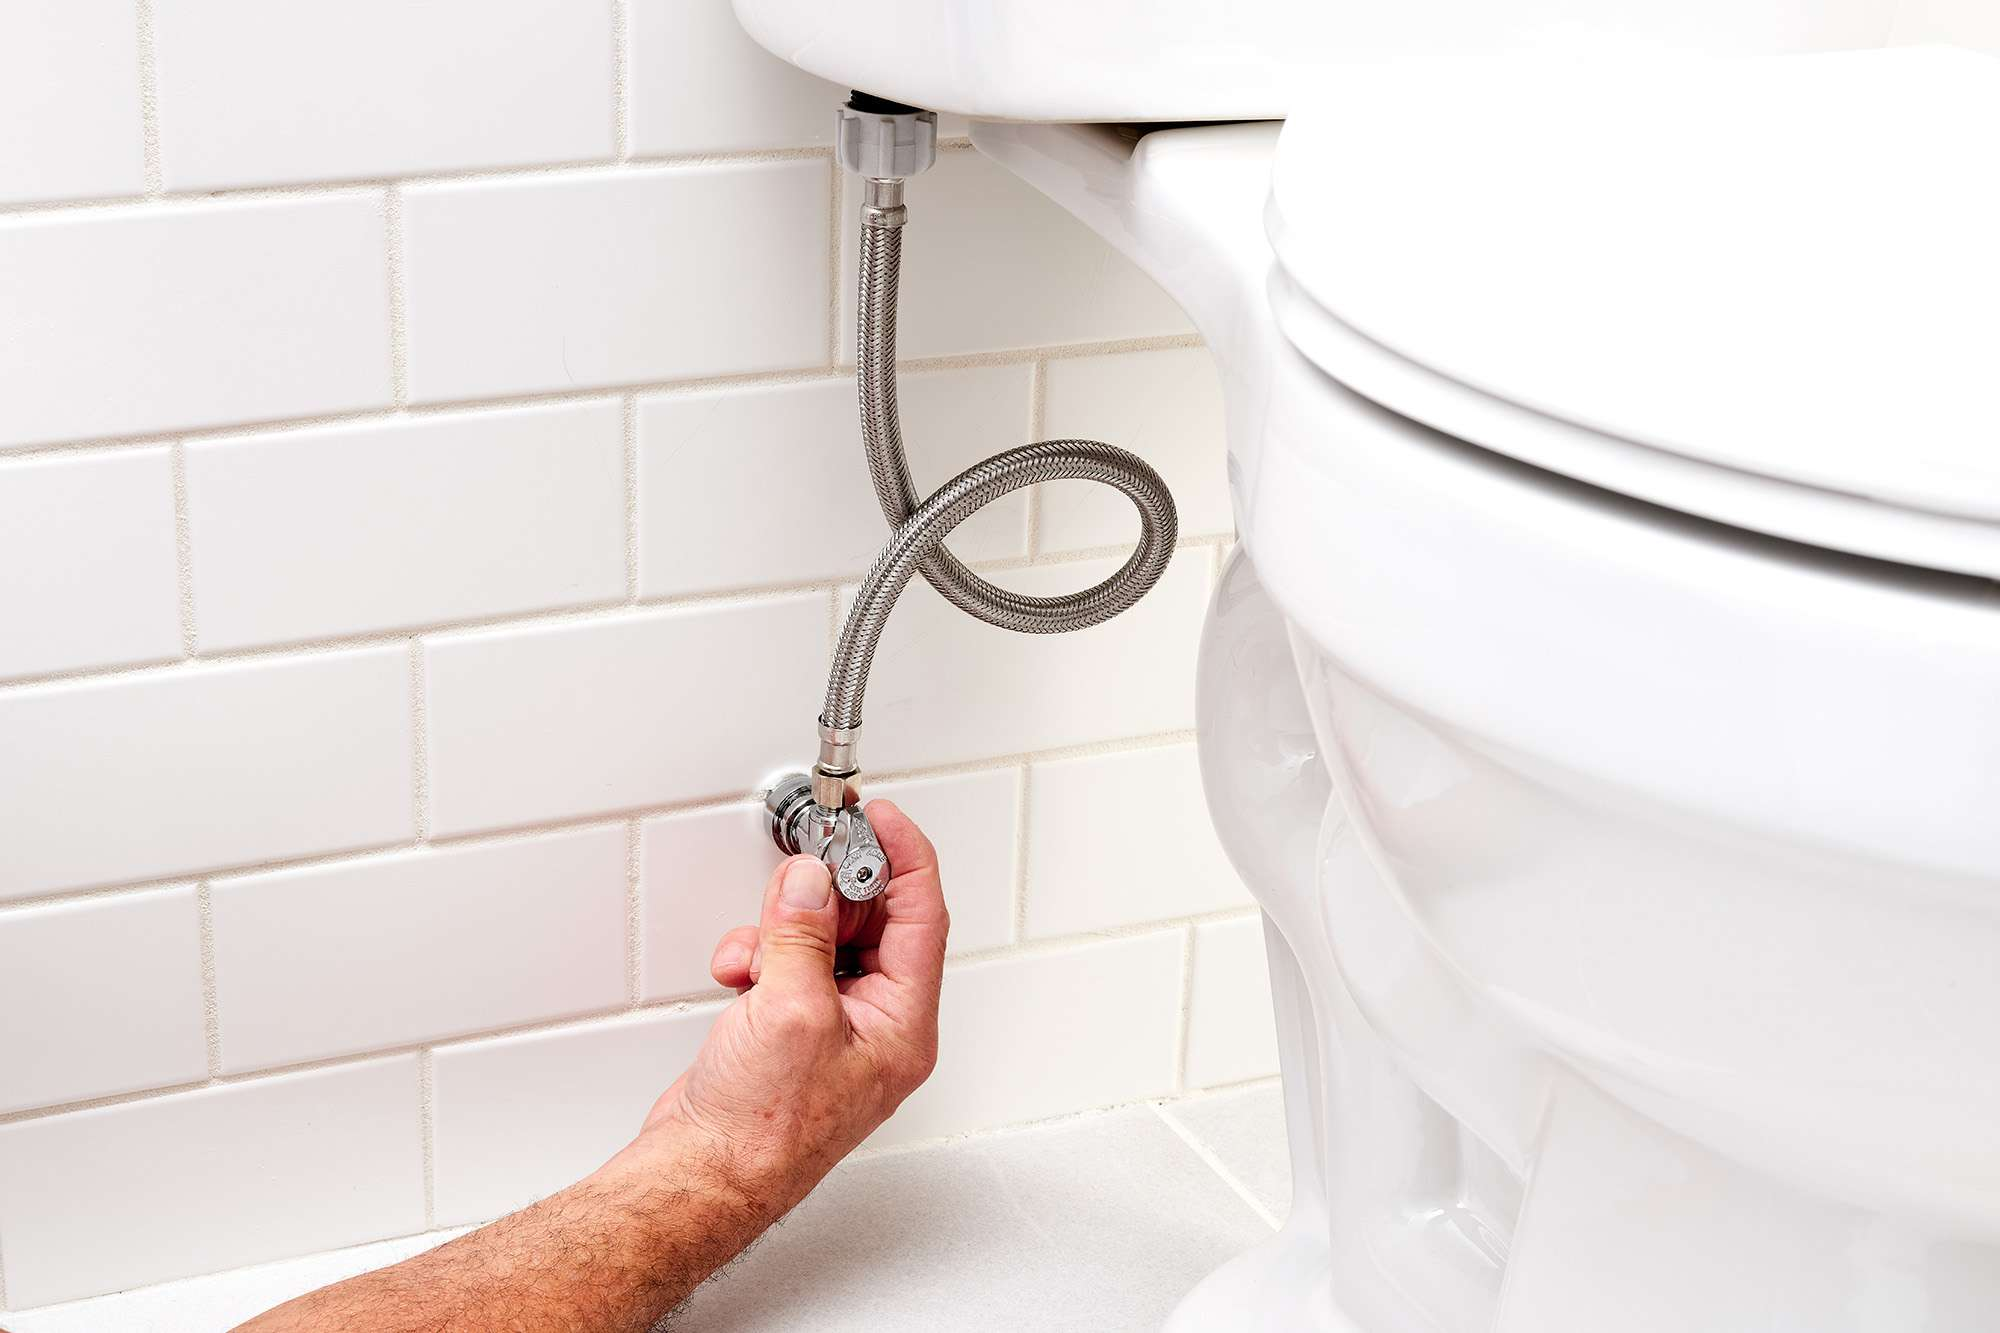 Shutoff valve handle turned to refill and test toilet